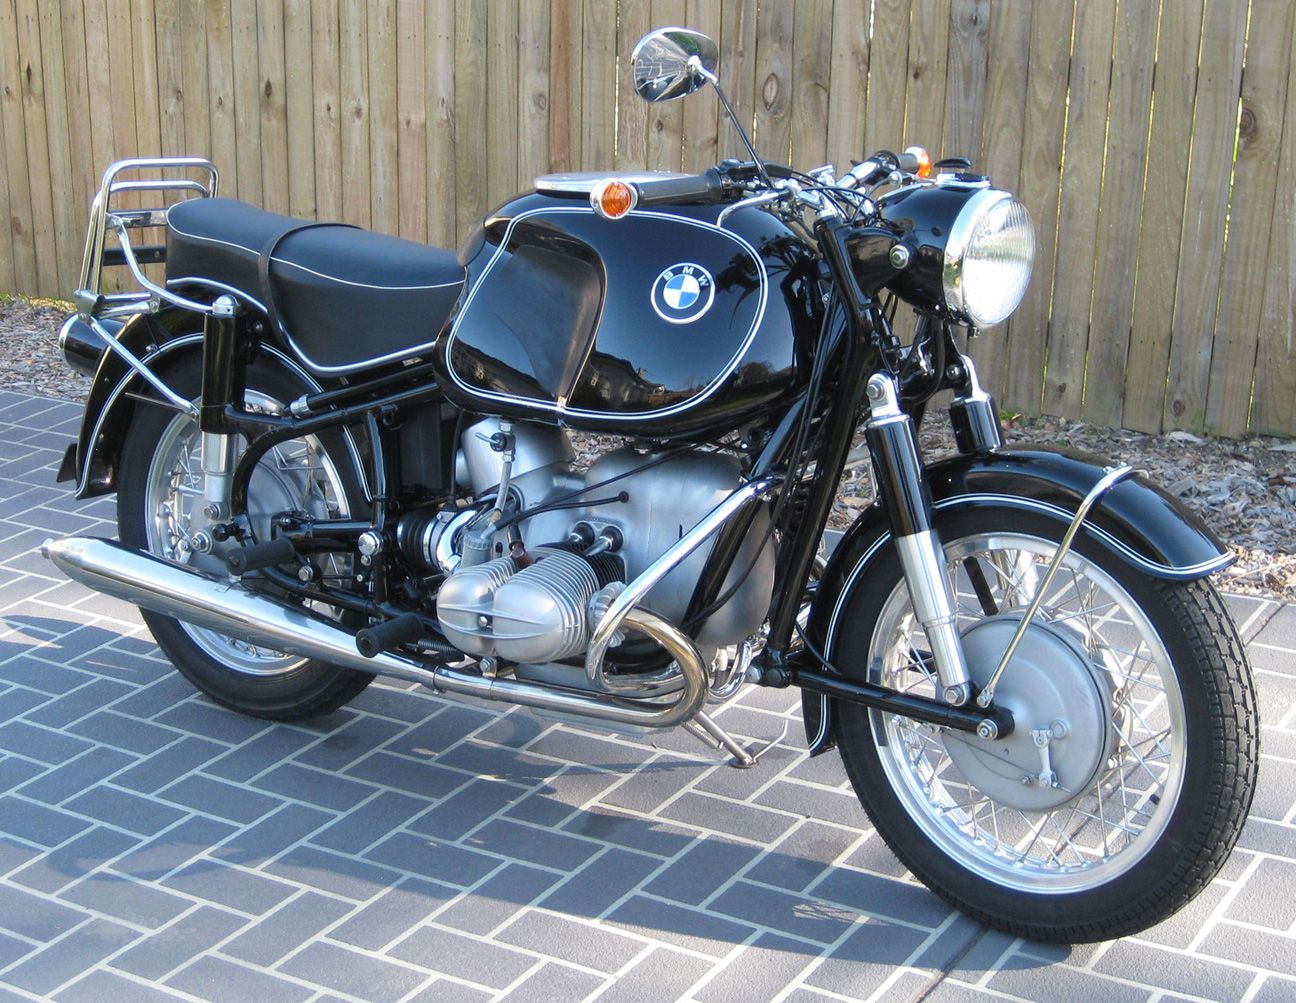 the velobanjogent sorbo 39 s recently restored bmw r69s 600cc twin. Black Bedroom Furniture Sets. Home Design Ideas